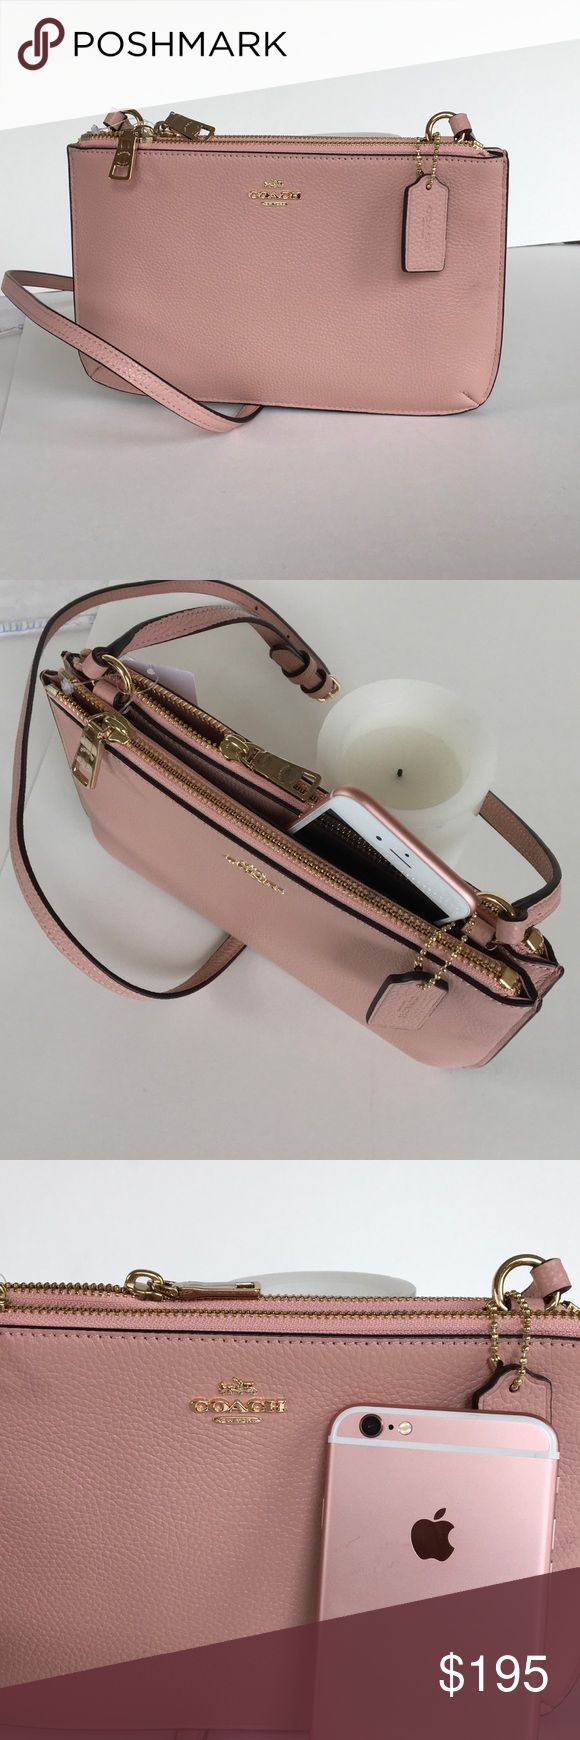 Coach Lyla double gusset crossbody bag  NWT Pristine Coach bag has two zippered compartments and a slip pocket in between. Blush color matches very well with iPhone rose gold color  Coach Bags Crossbody Bags